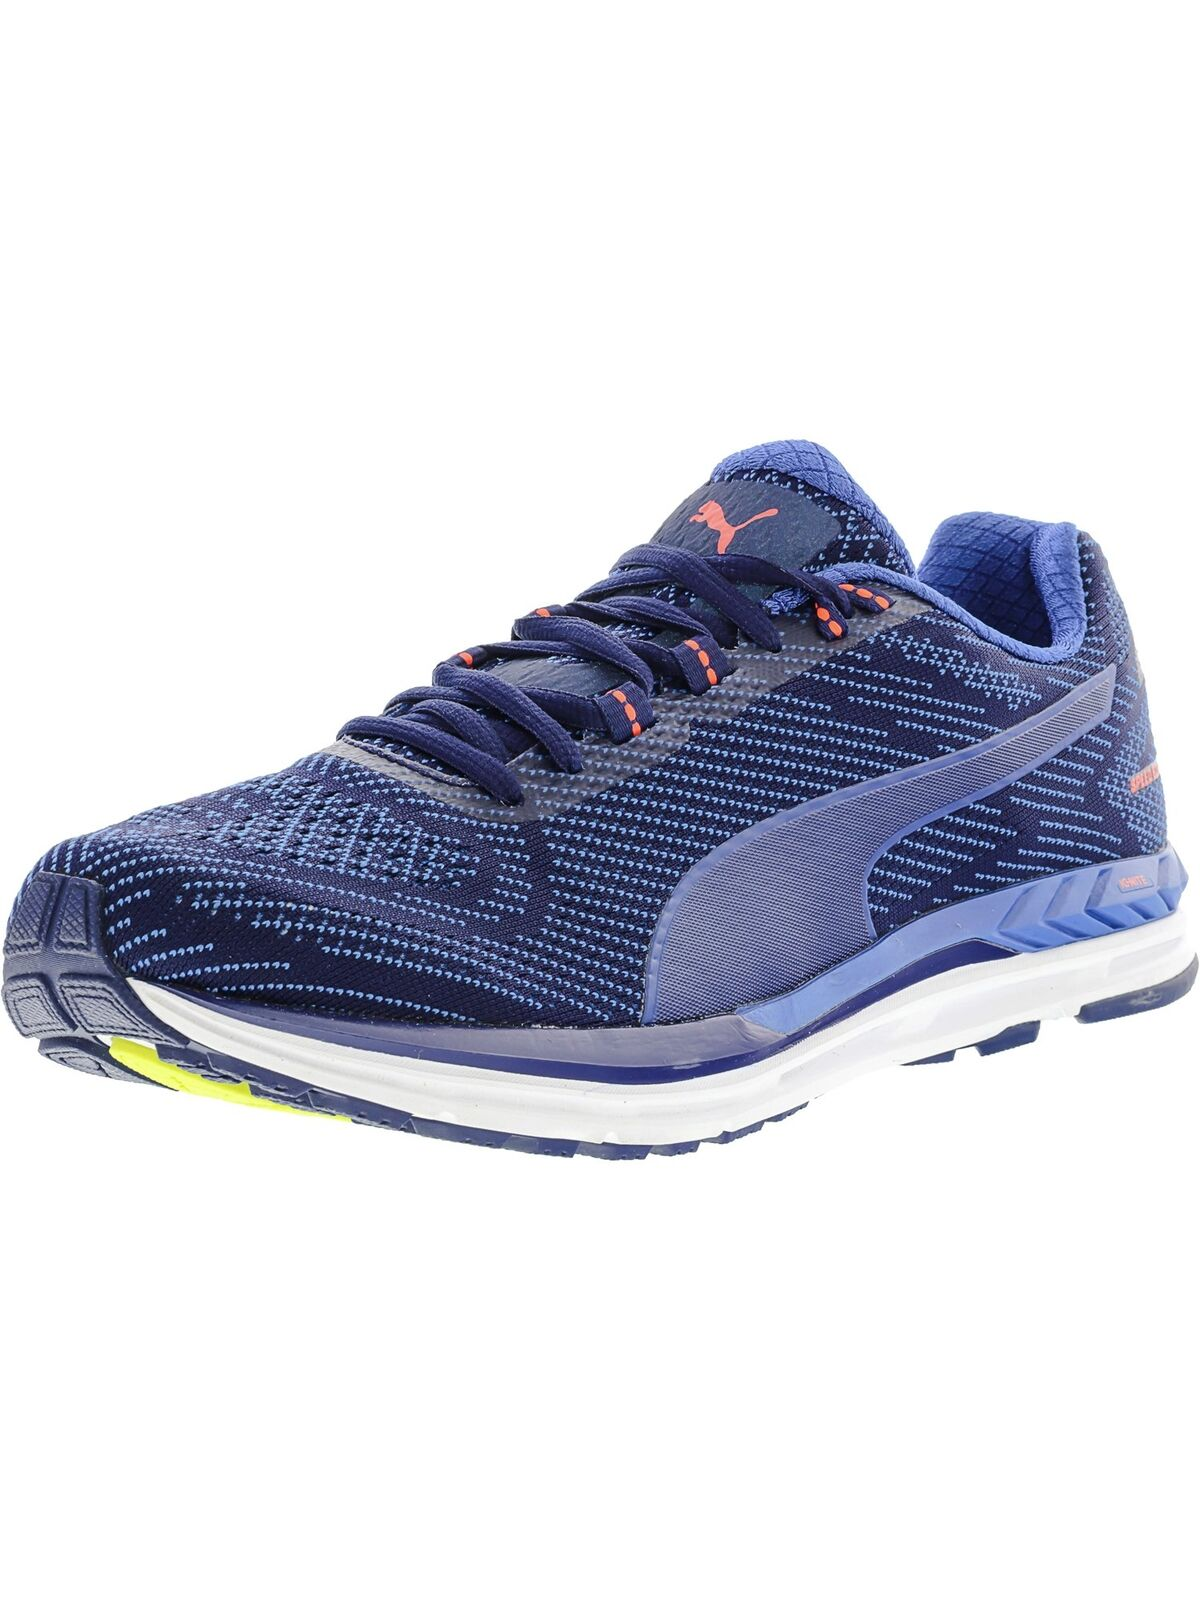 Puma Men's Speed 600 S Ignite Ankle-High Running shoes